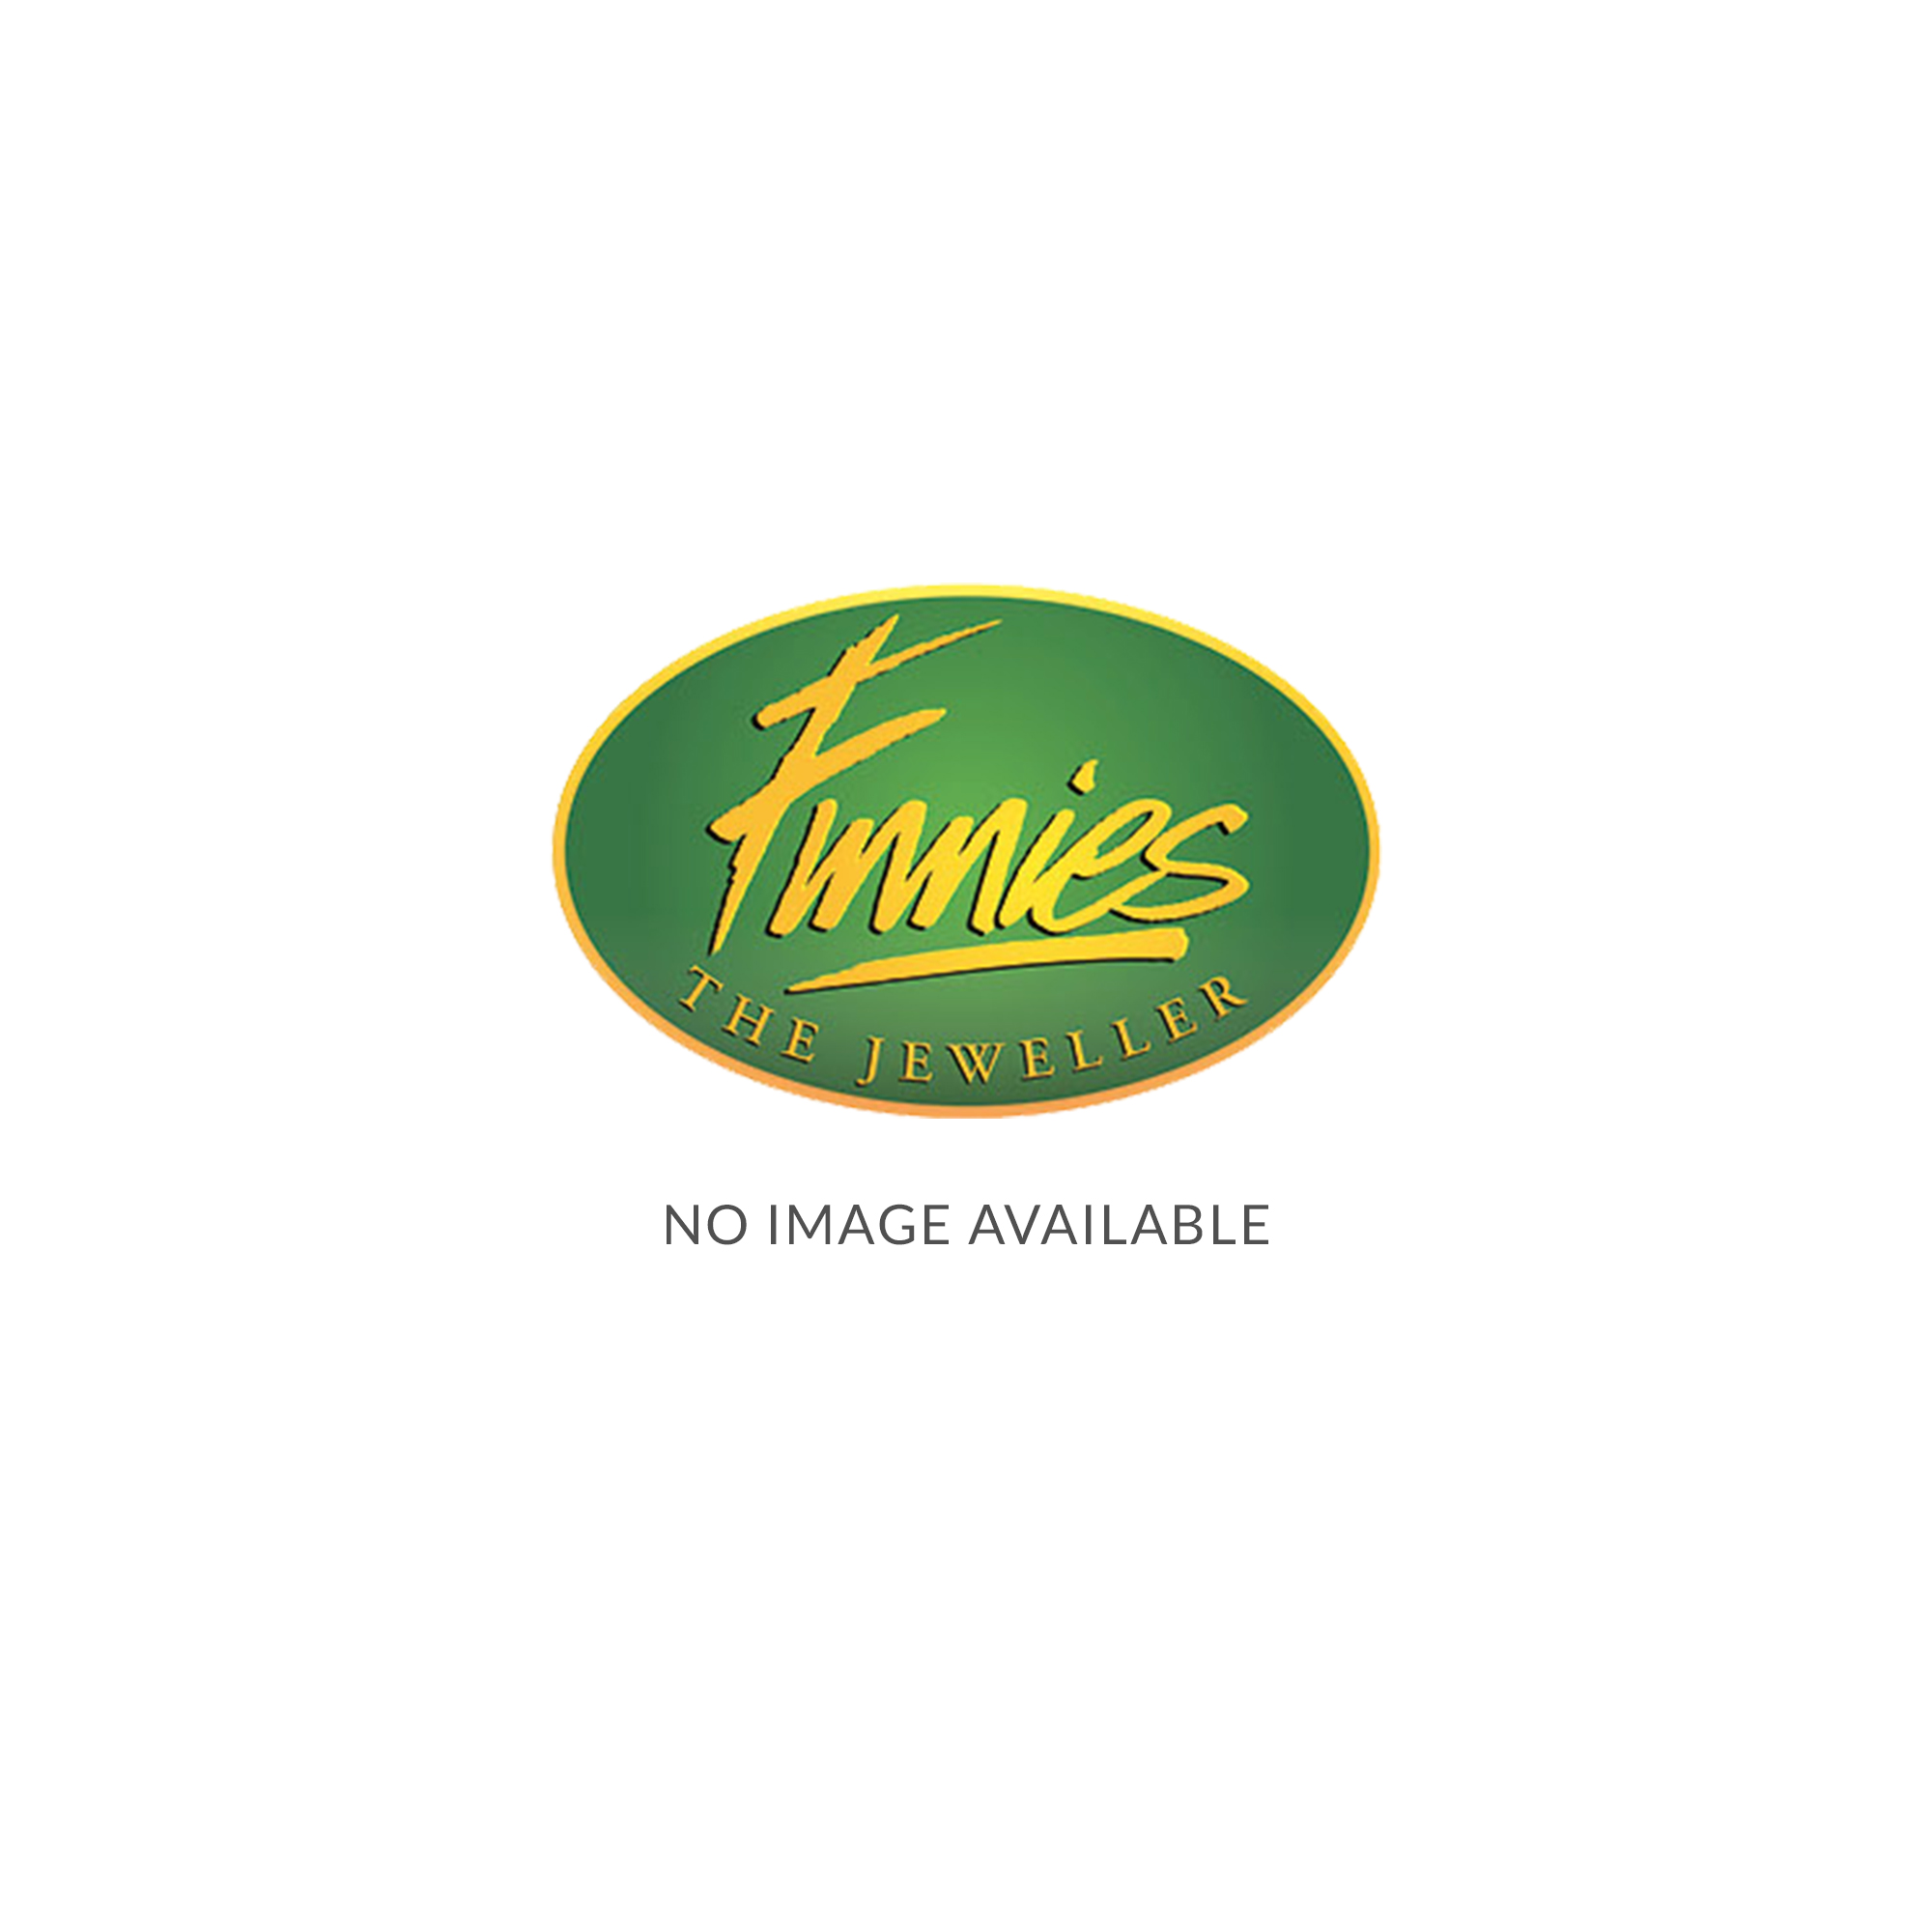 silver silhouette plated accent by yellow bronfman shaped stud diamonds shop circle dana gold black earring category open modern in rhodium bezels earrings organically with diamond